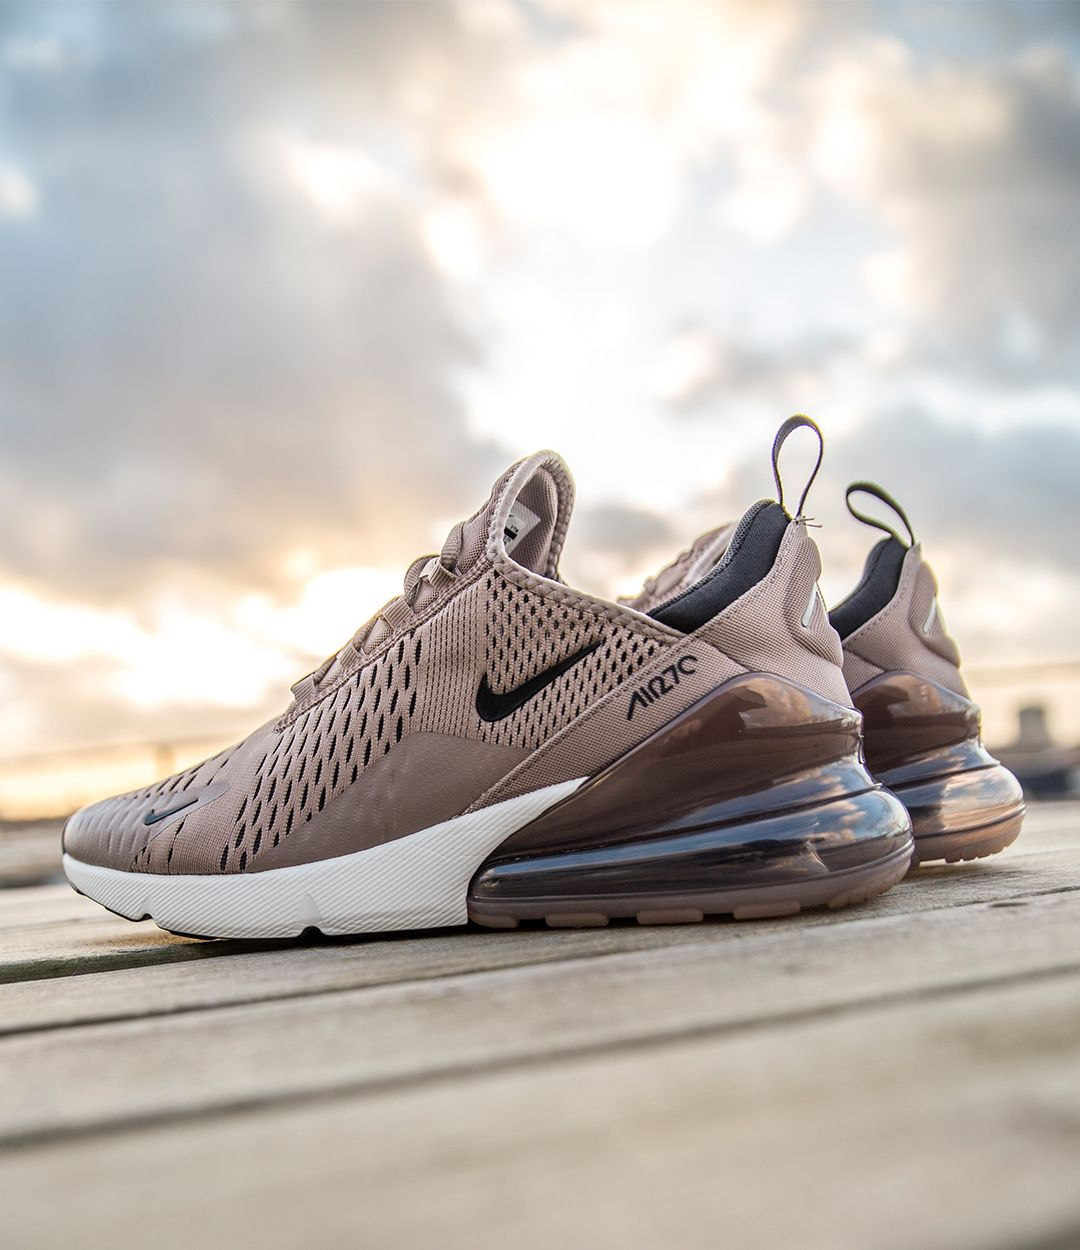 Nike Air Max 270 | Shoes | Sneakers fashion, Nike shoes